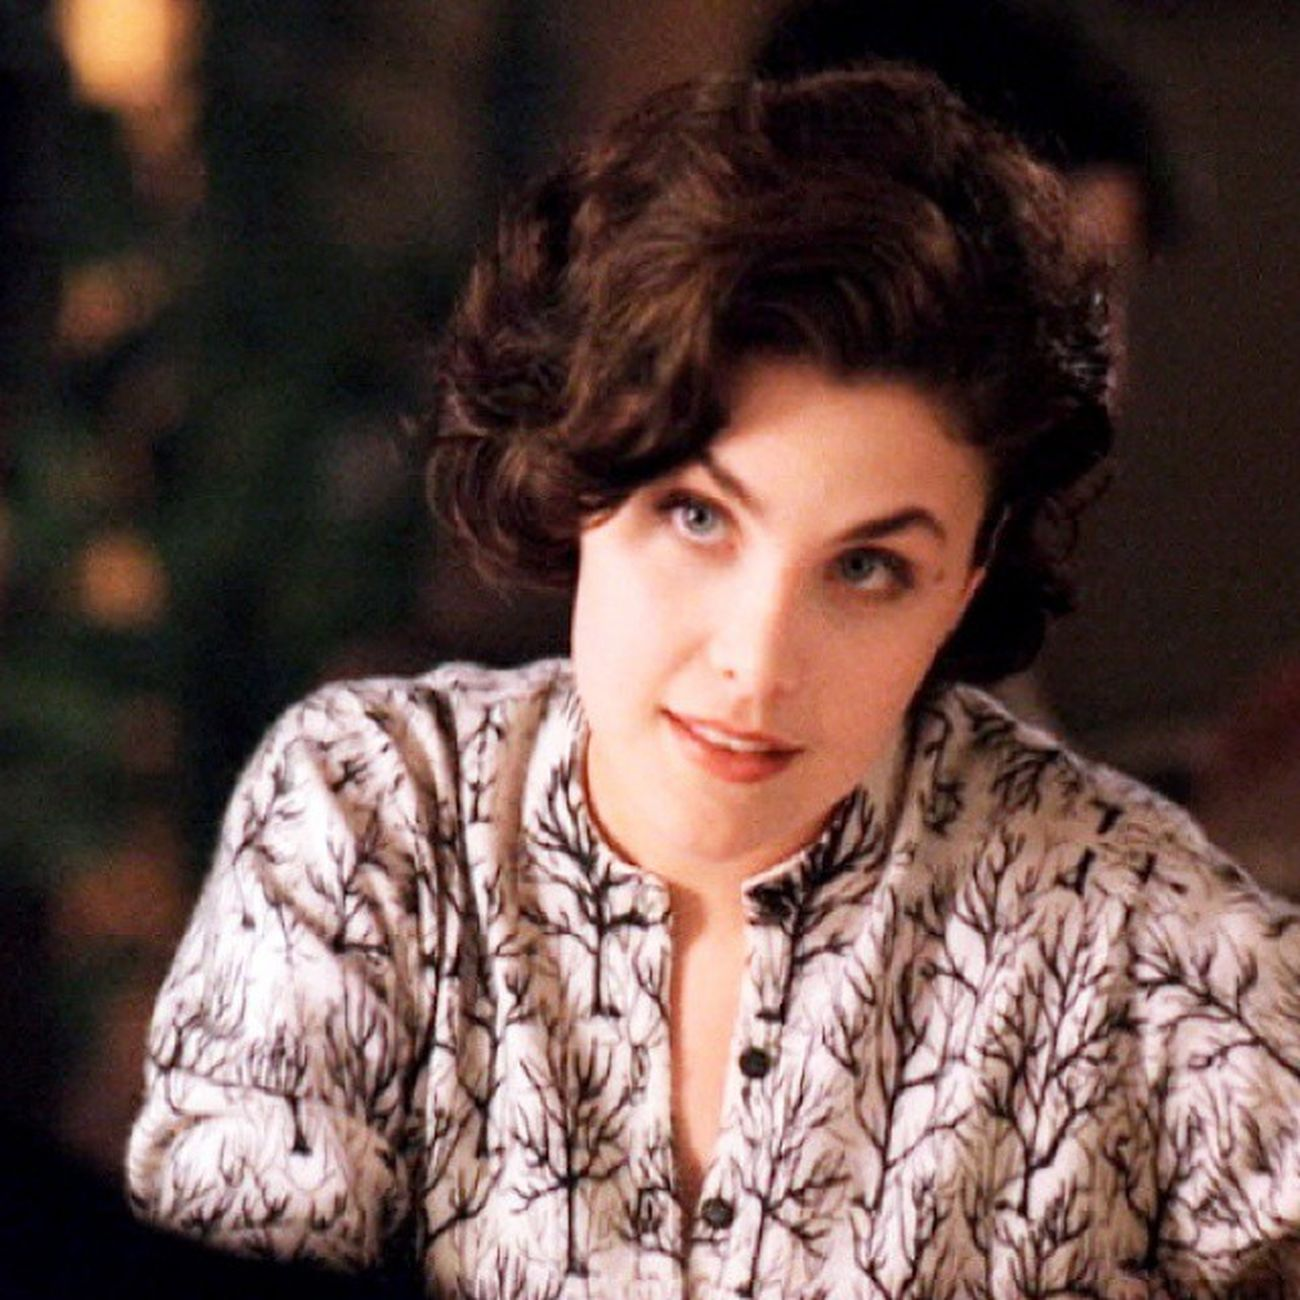 My WCW is Audrey Horne (Sherilyn Fenn) from Twin Peaks. Twinpeaks DavidLynch Damnfinecoffee